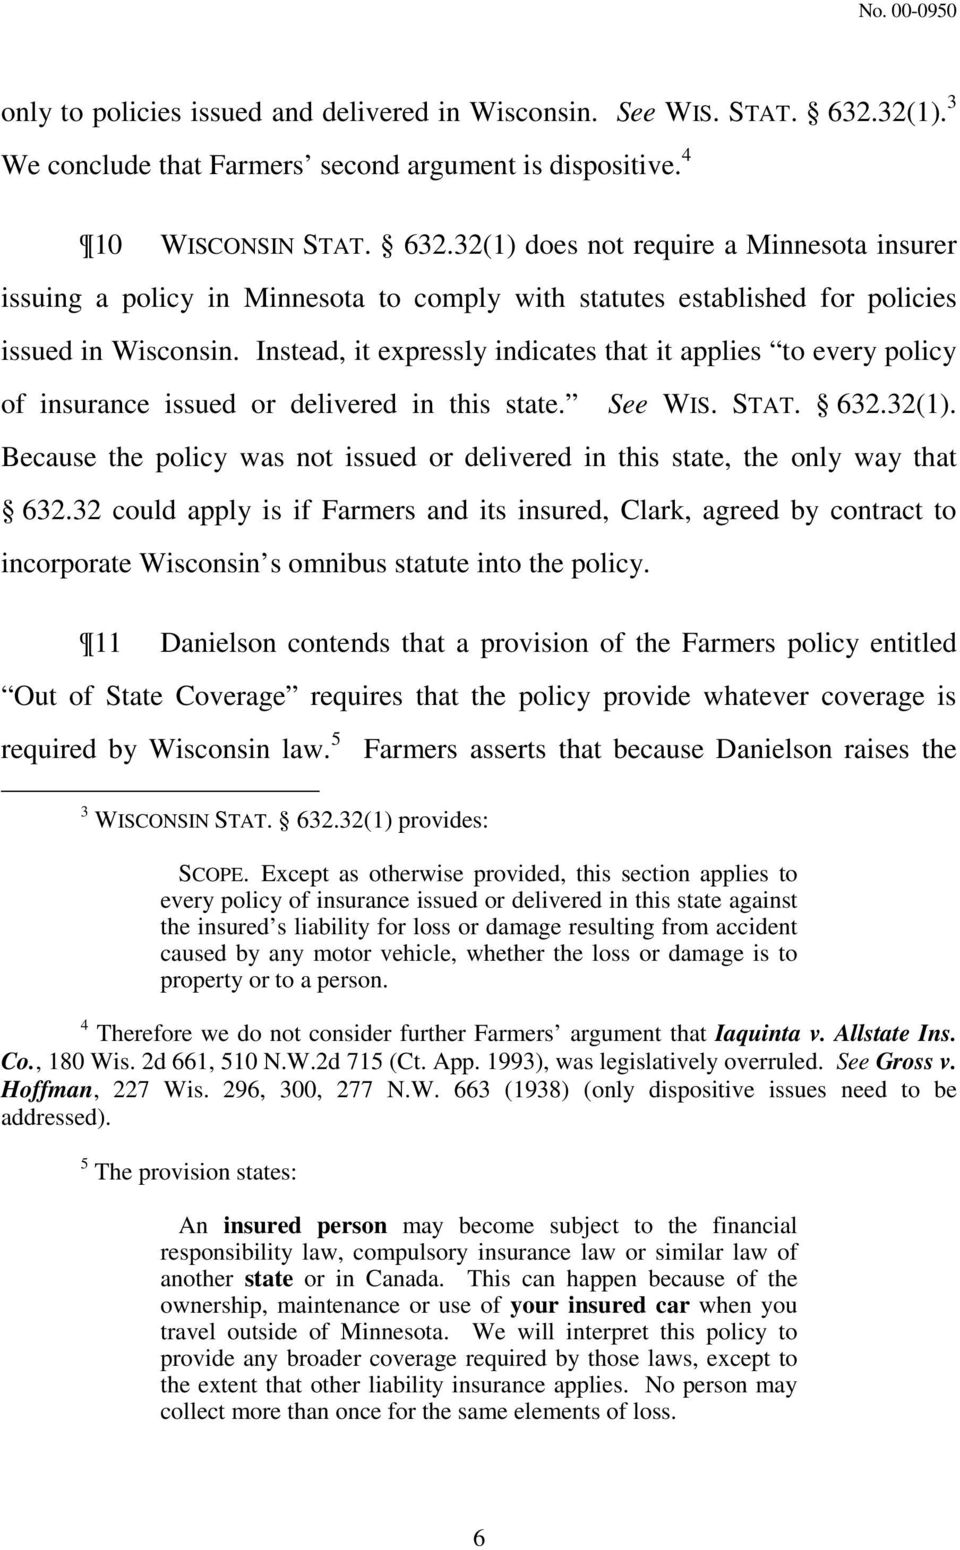 32(1) does not require a Minnesota insurer issuing a policy in Minnesota to comply with statutes established for policies issued in Wisconsin.